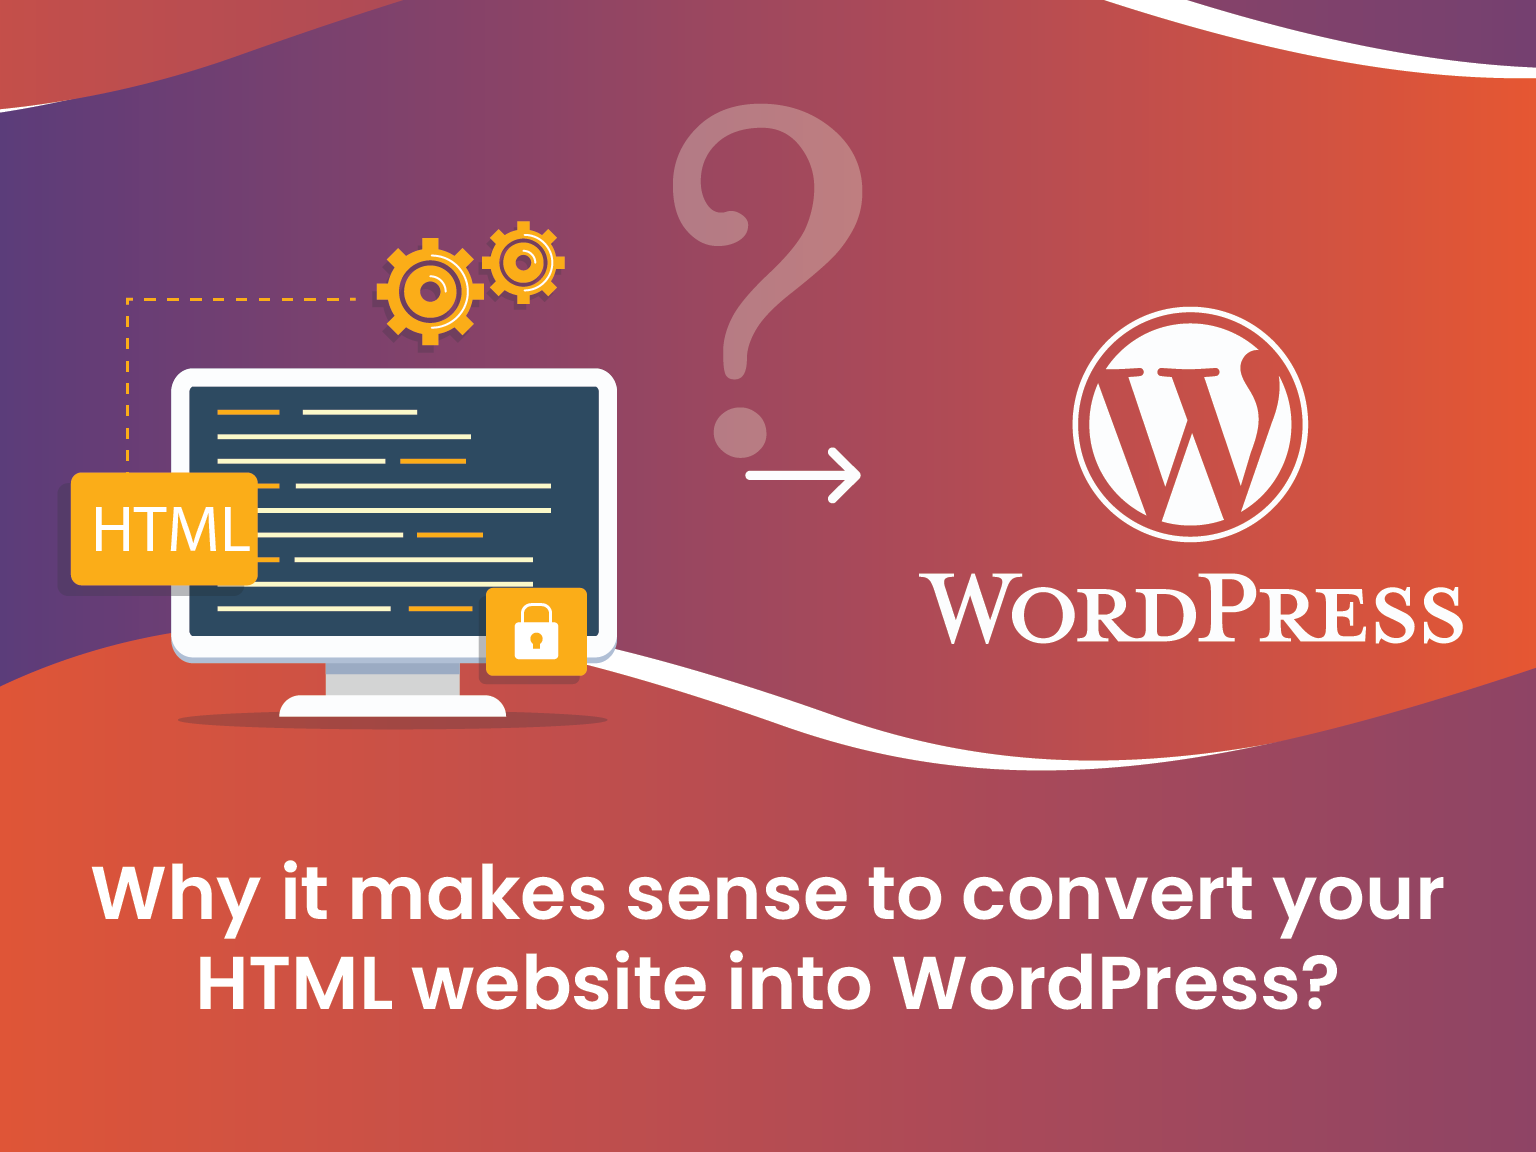 Why-it-makes-sense-to-convert-your-HTML-website-into-WordPress